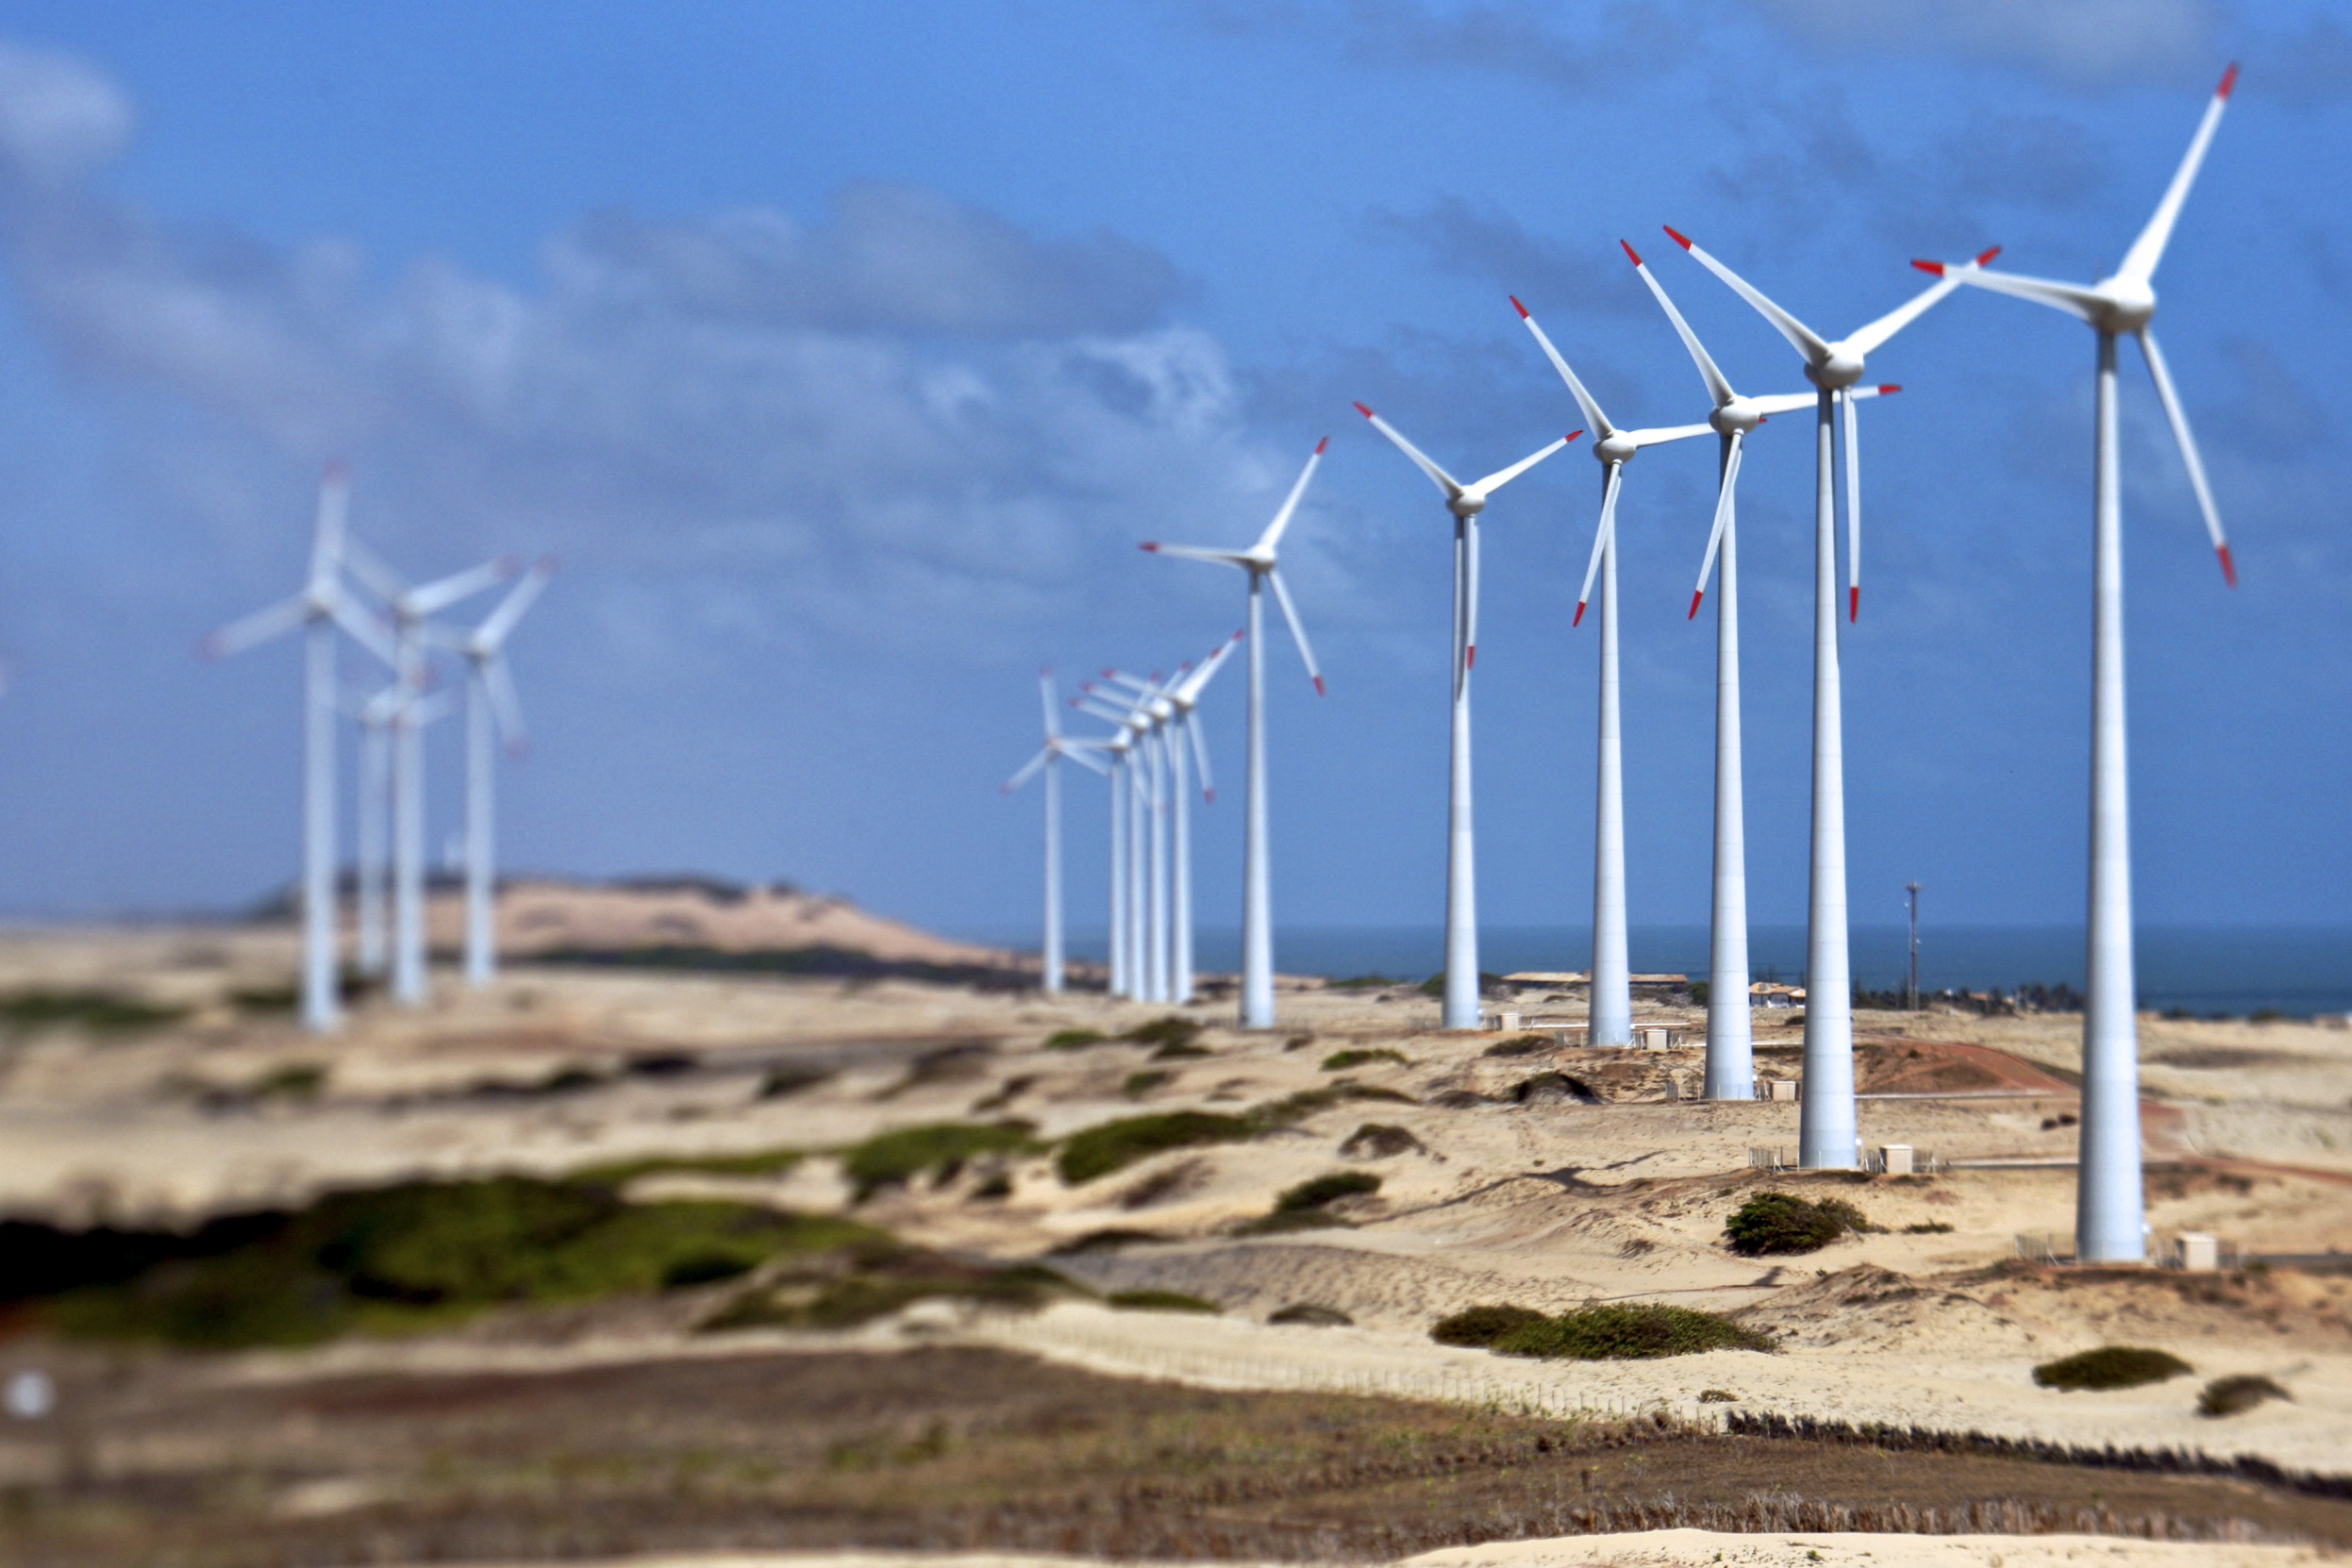 Spain awards clean power capacity below market price in oversubscribed auction